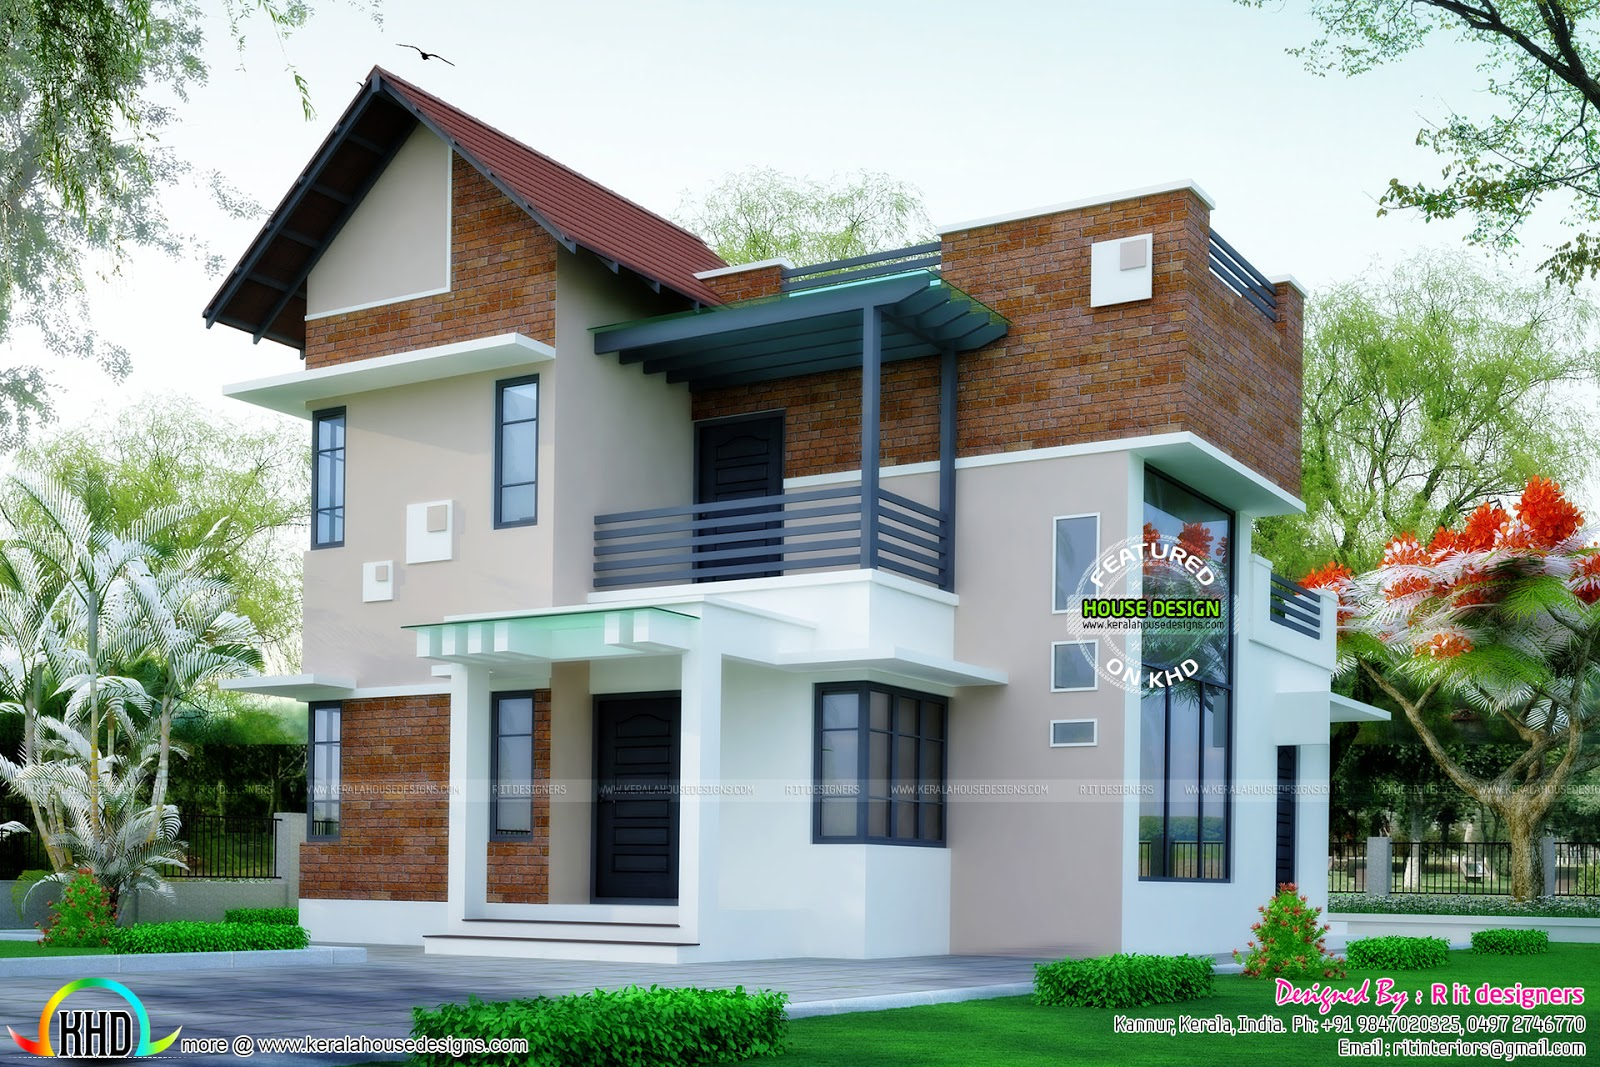 Brick wall mix modern house plan kerala home design and for House by design